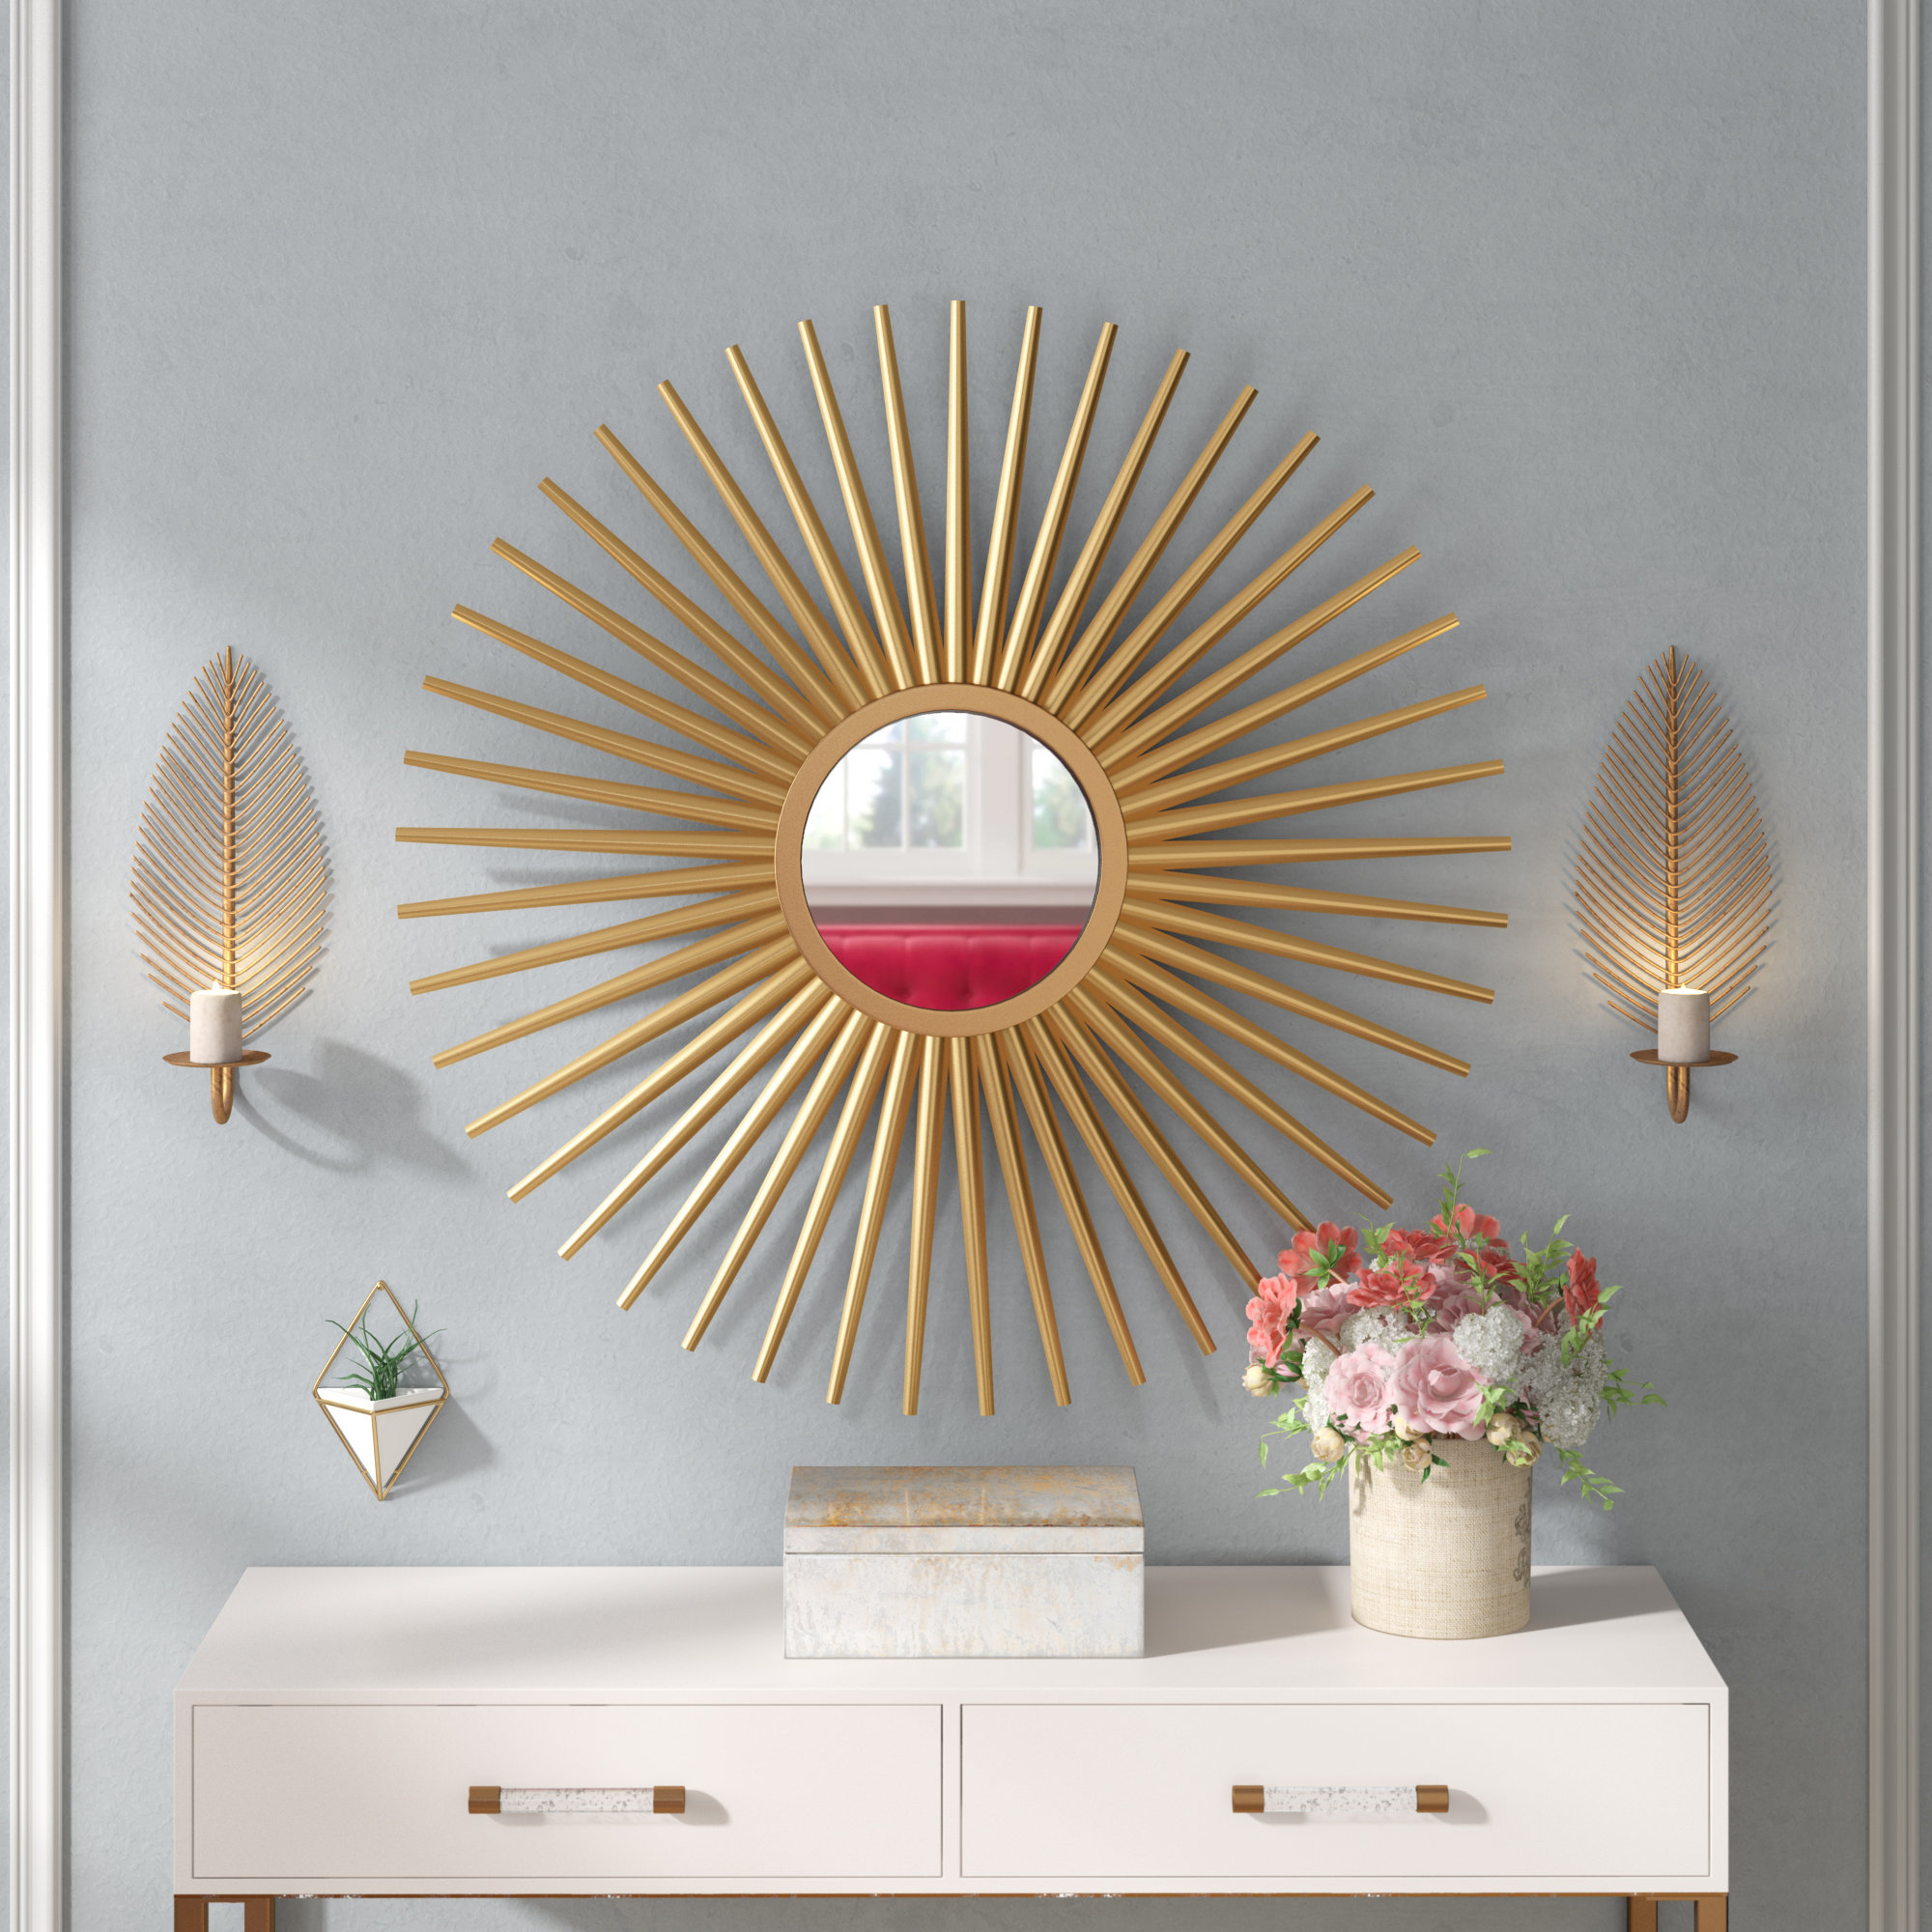 Sunburst Wall Mirror Intended For Starburst Wall Decor By Willa Arlo Interiors (View 19 of 30)